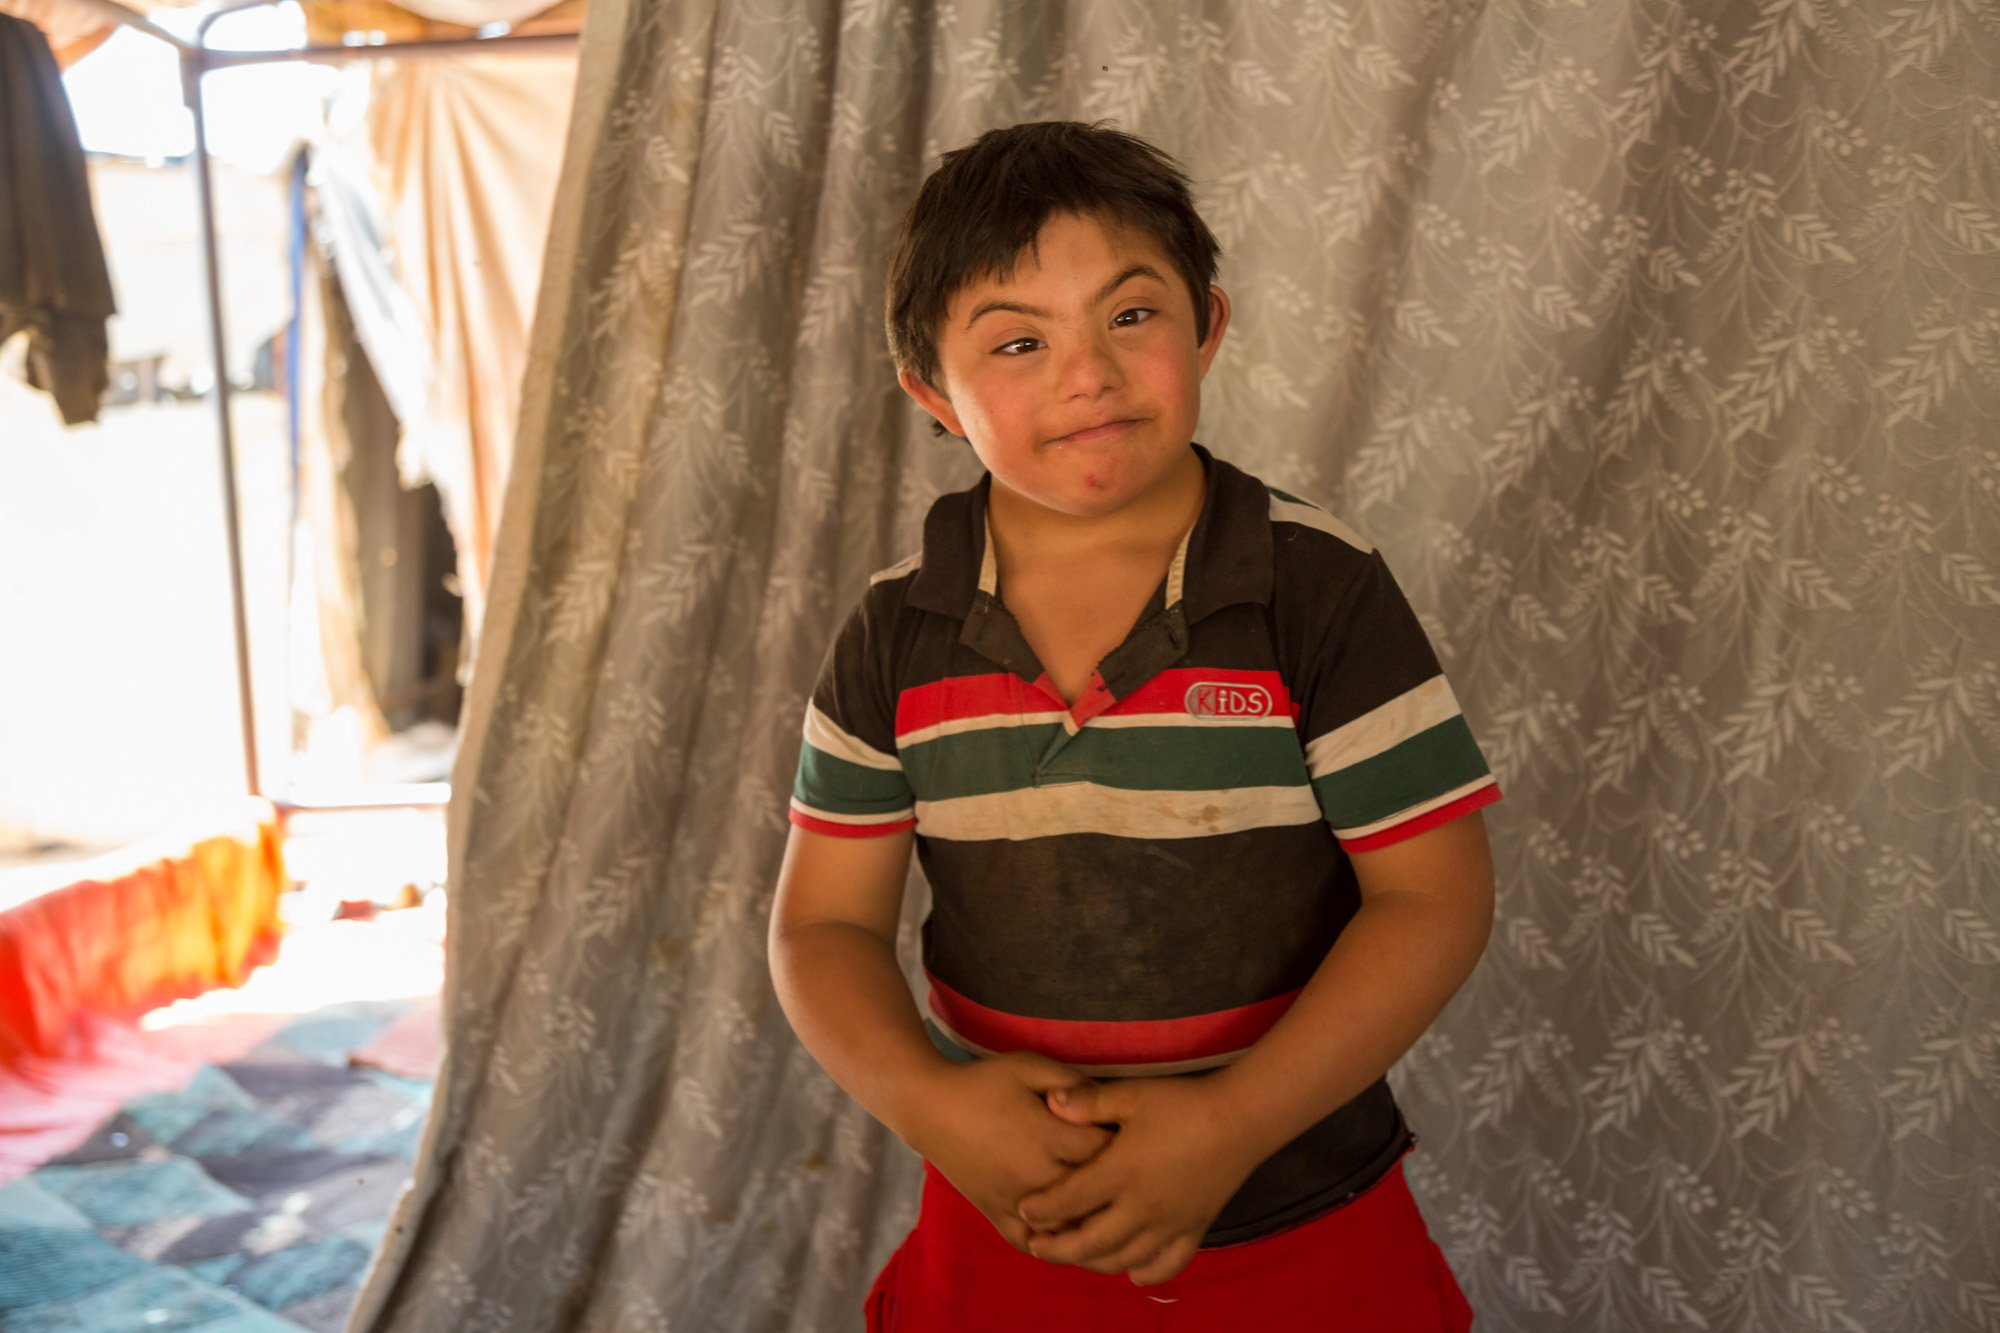 A 10-year-old Syrian refugee in Jordan with down syndrome